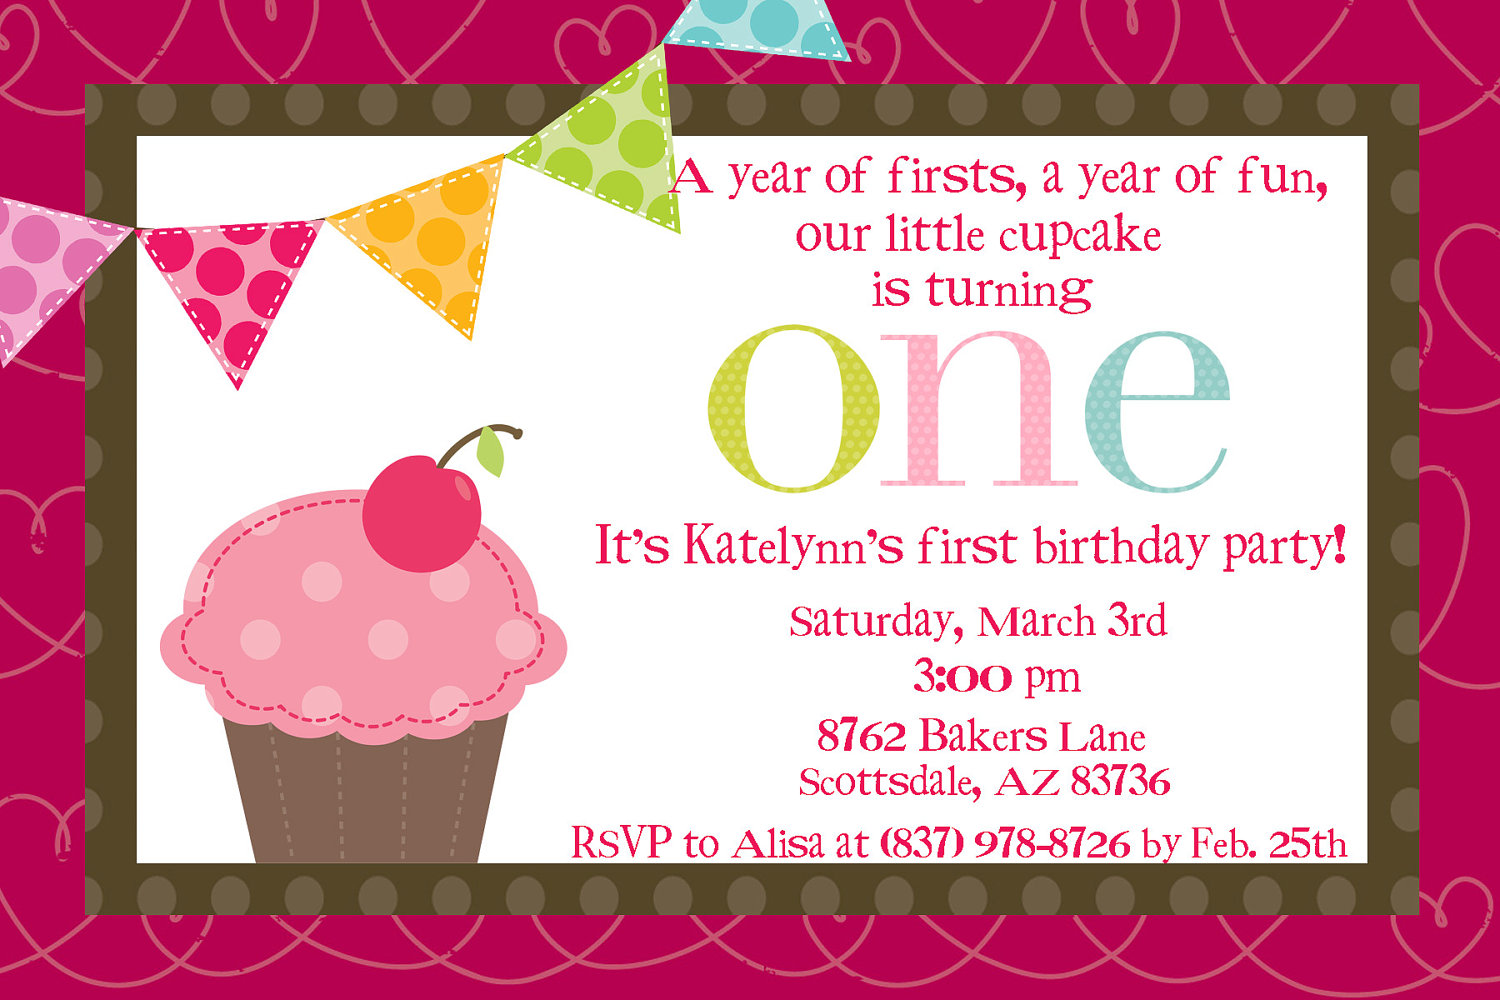 cupcake photo birthday invitations ; cupcake-birthday-invitations-with-Birthday-Invitation-designs-for-your-invitation-design-7